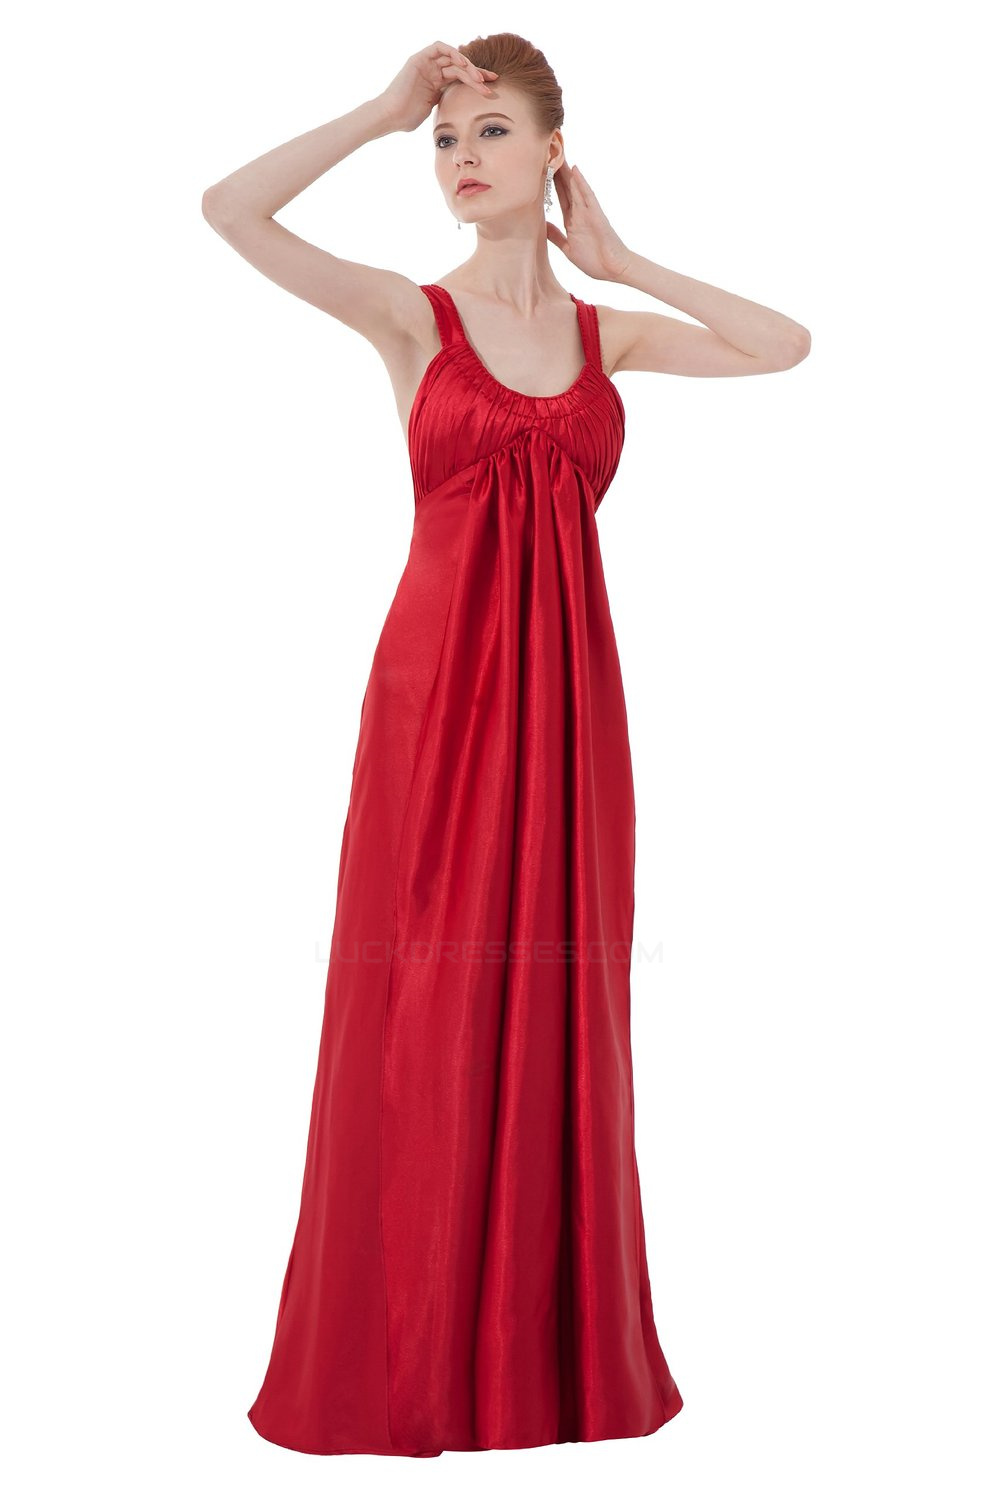 Empire Long Red Bridesmaid Dresses Wedding Party Dresses Maternity